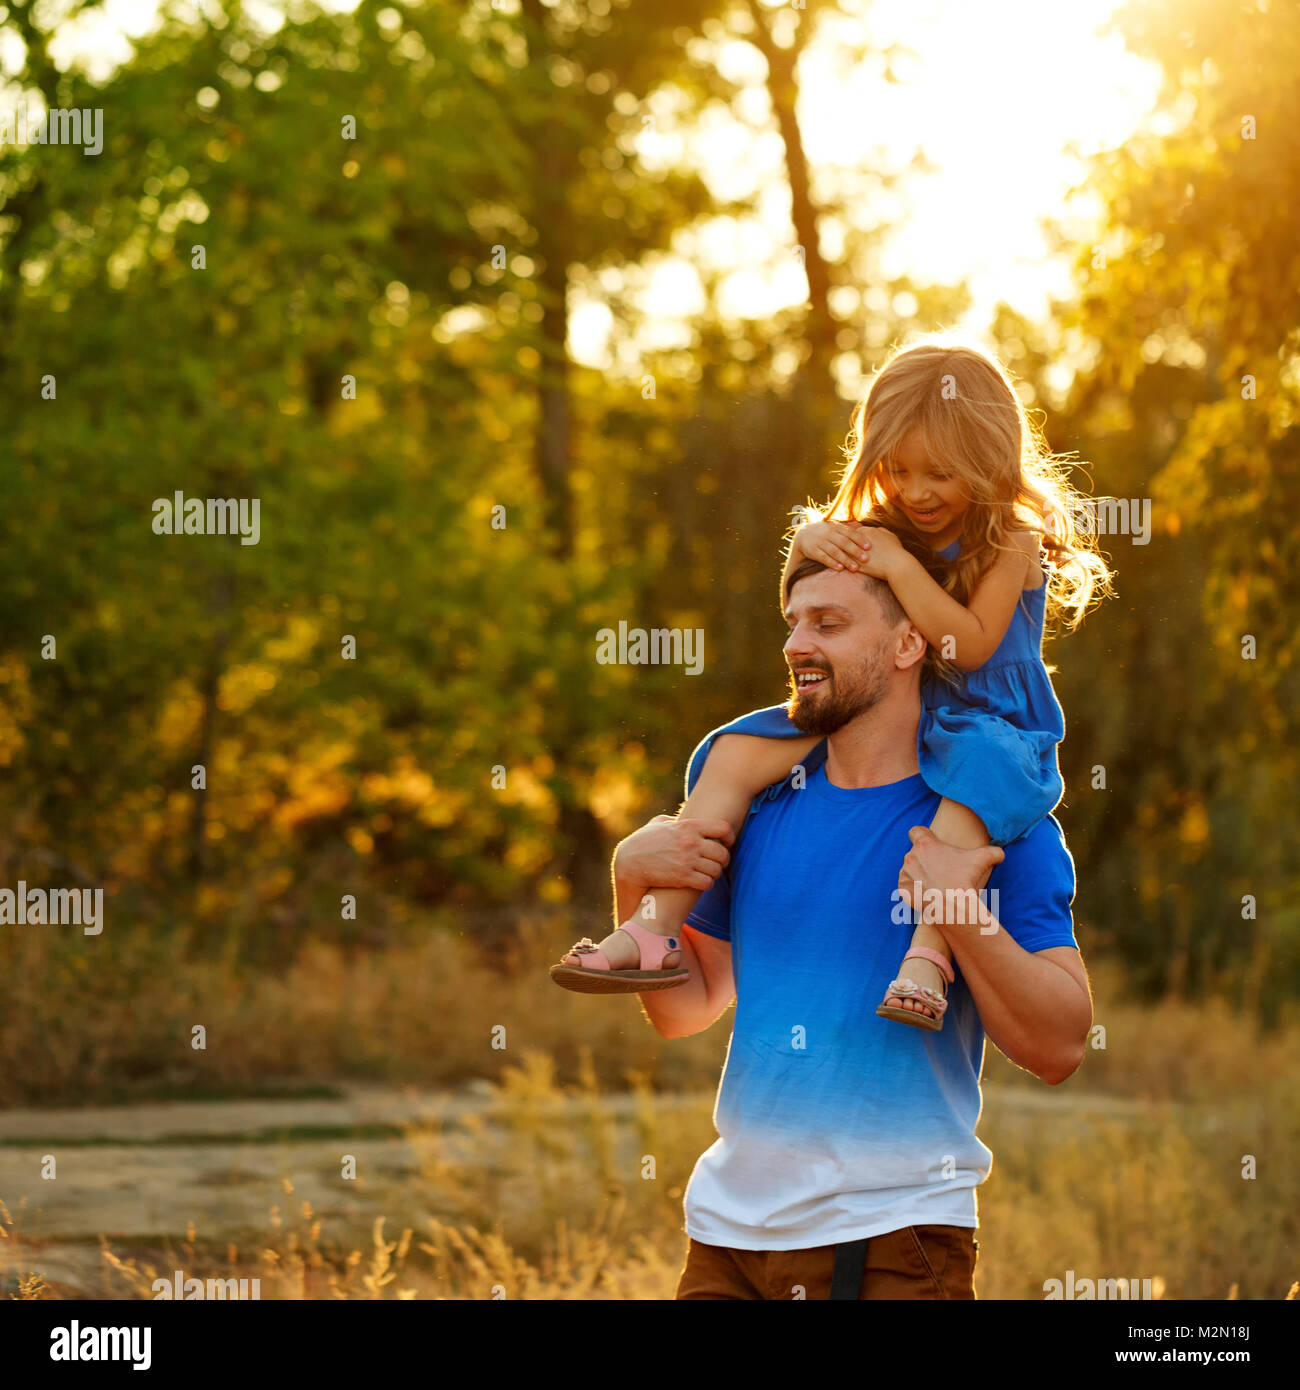 Family time. The father holds the daughter on the shoulders of piggyback. Walk in the park. They laugh and rejoice. - Stock Image